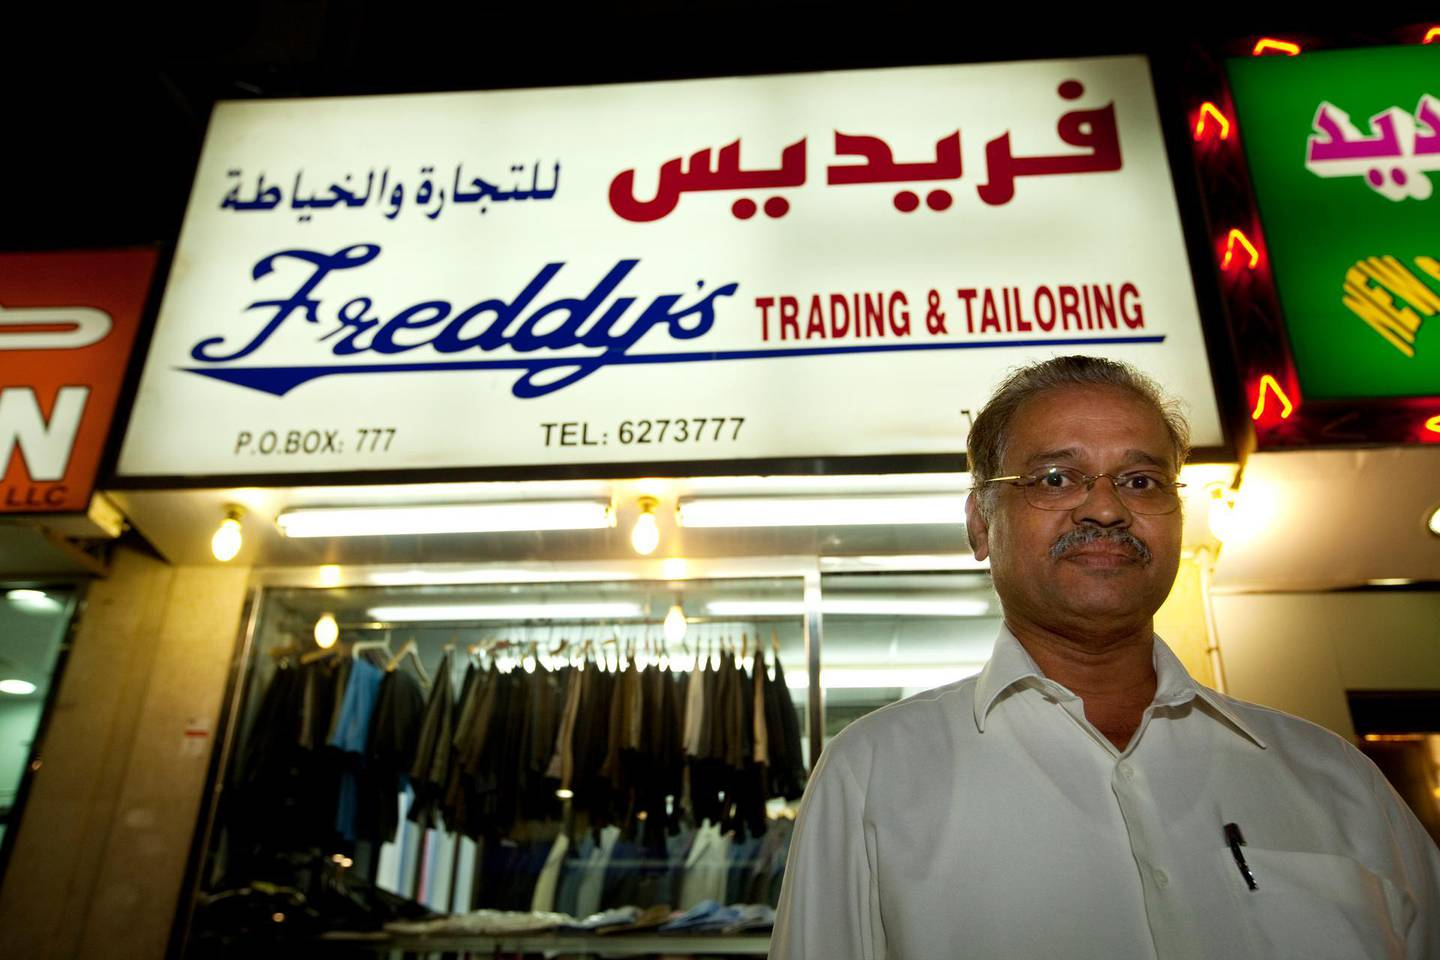 Freddy's tailoring owner Henry Sequeira in Abu Dhabi on February 7, 2012. Christopher Pike / The National